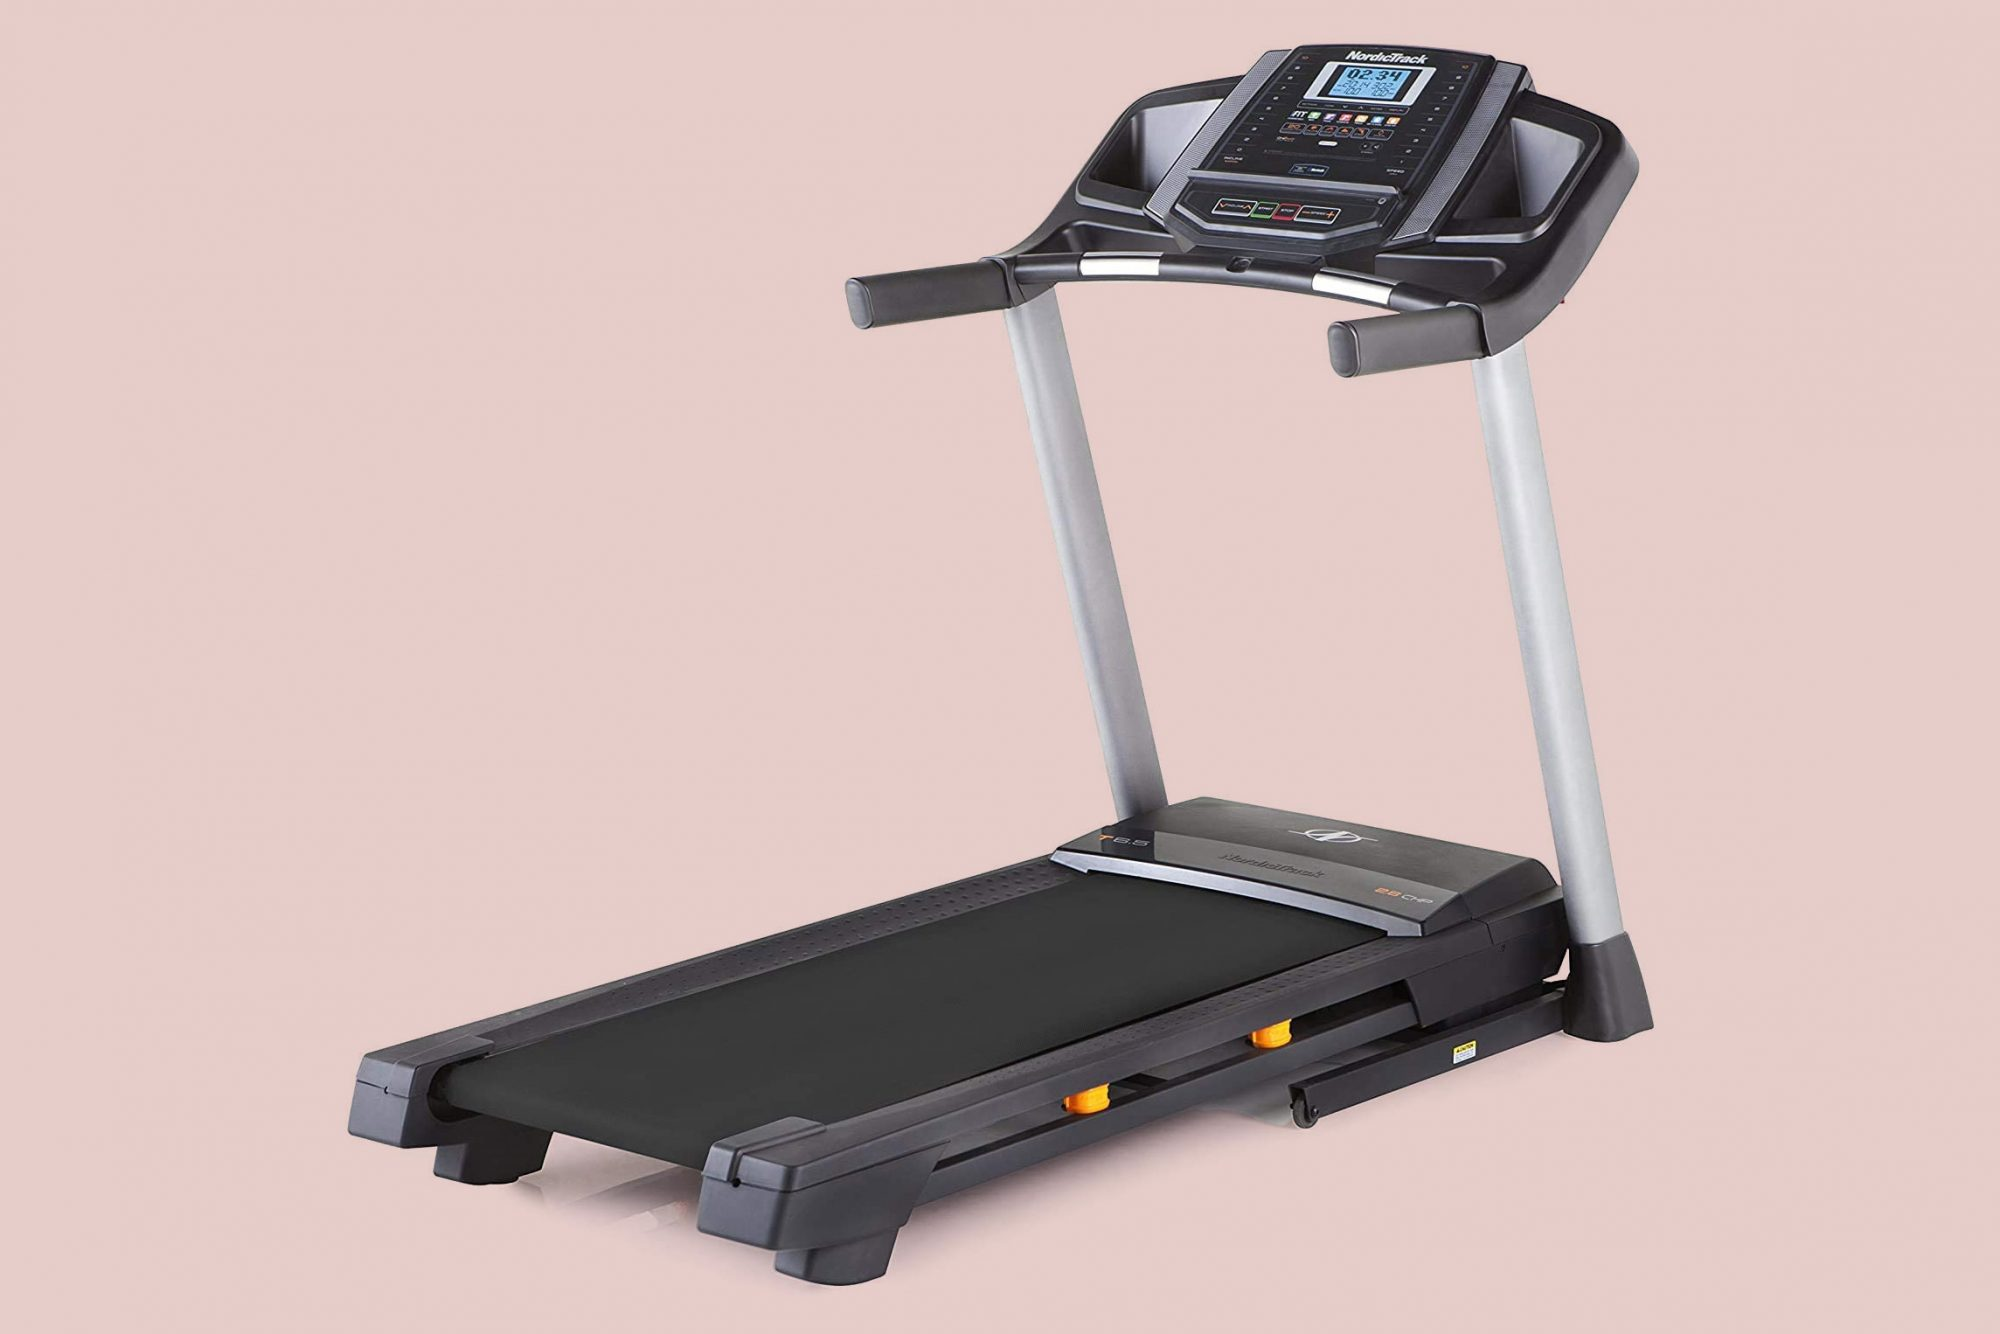 nordictrack t series treadmill on pink background